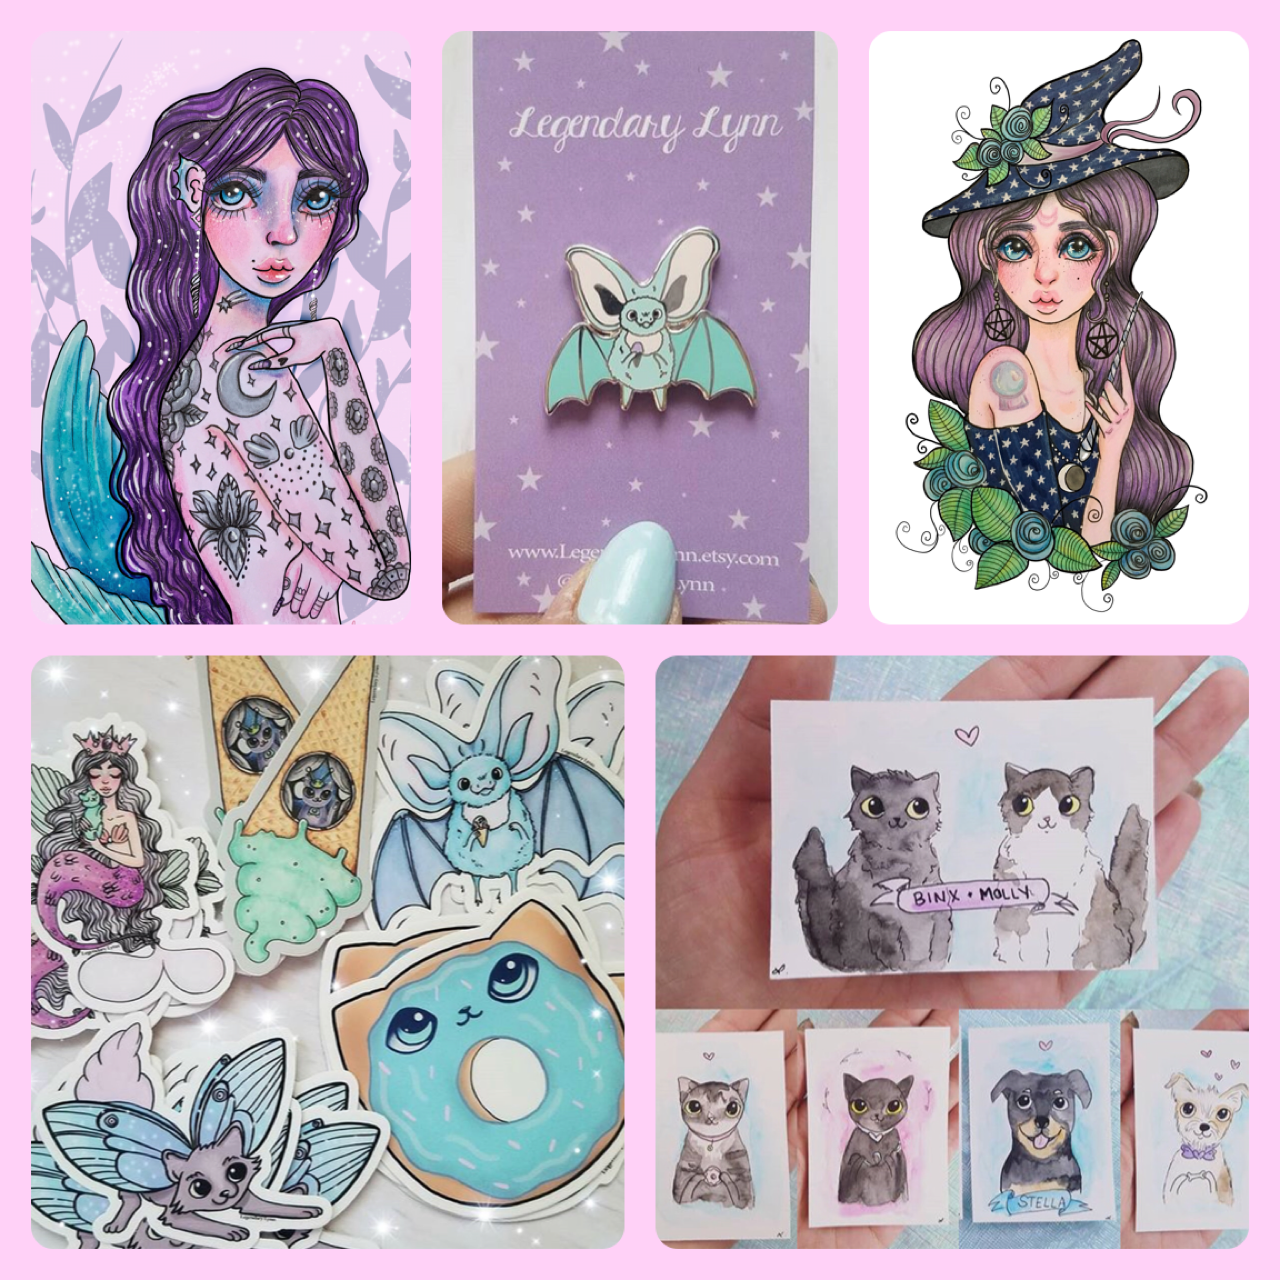 Legendary Lynn - Legendary Lynn is a fantasy illustrator who is inspired by fairytales, romance, and femininity. Lynn's work features women and animals. She uses colored pencils, alcohol markers, and watercolors. Lynn will be selling prints, stickers, bookmarks, enamel pins and more!